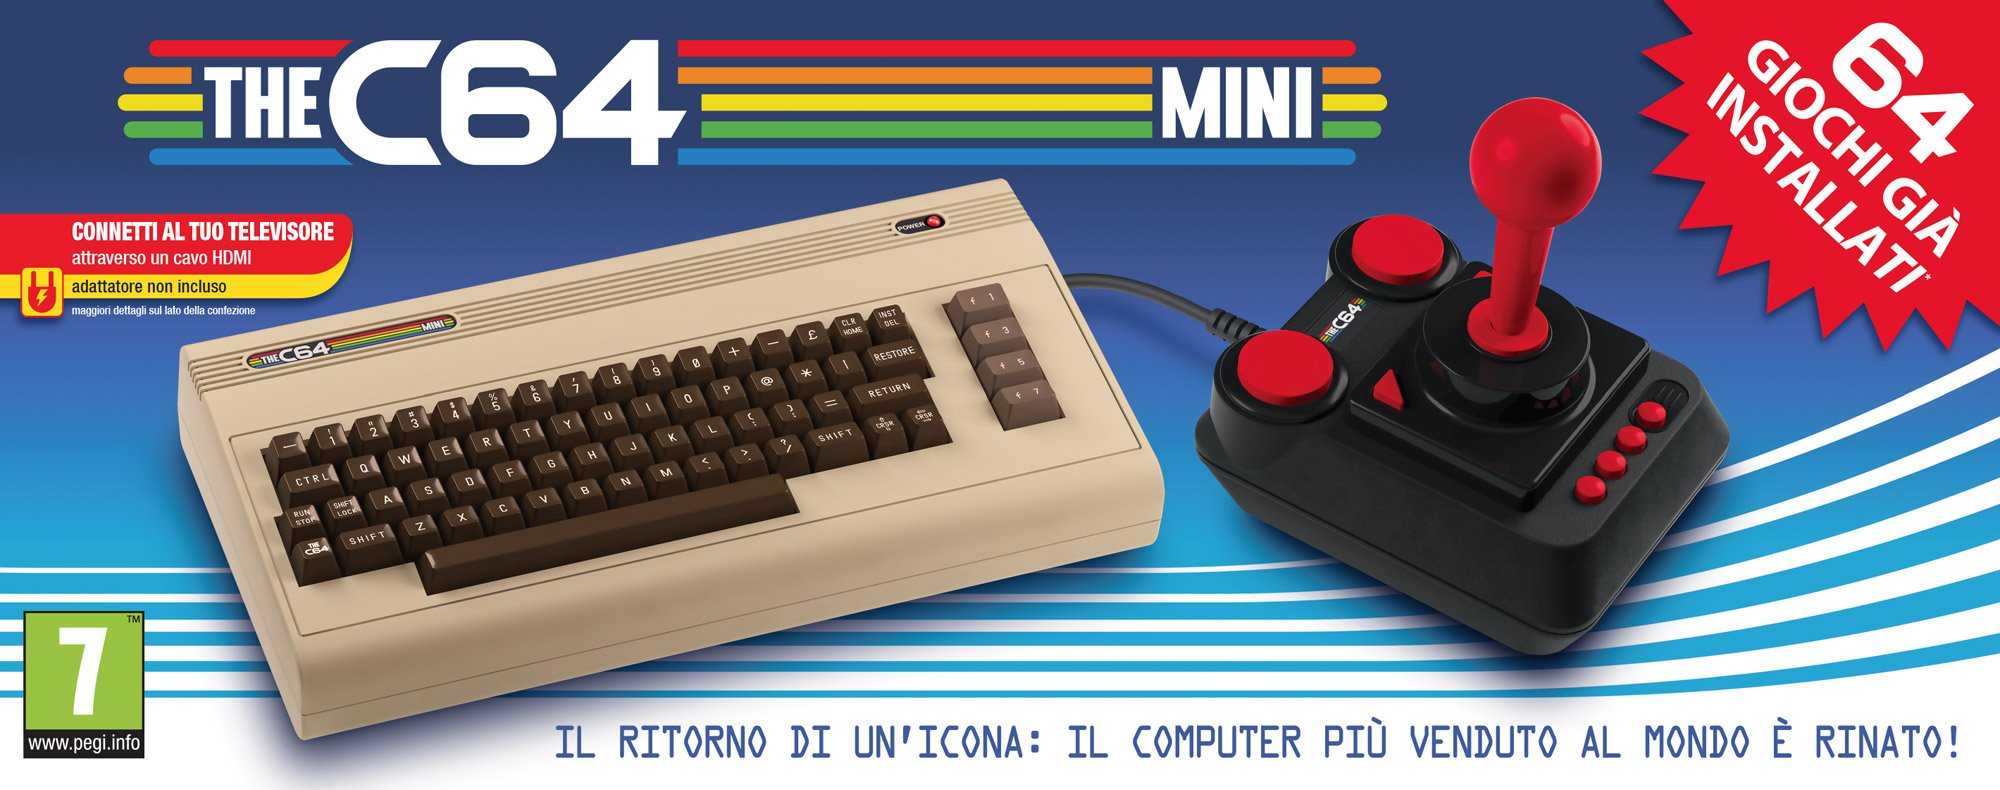 The C64 Mini Console Videogames Deep Silver (EU IMPORT) + 1 Joystick + 64 Games Pre-Installed by Retro Games Ltd (Image #2)